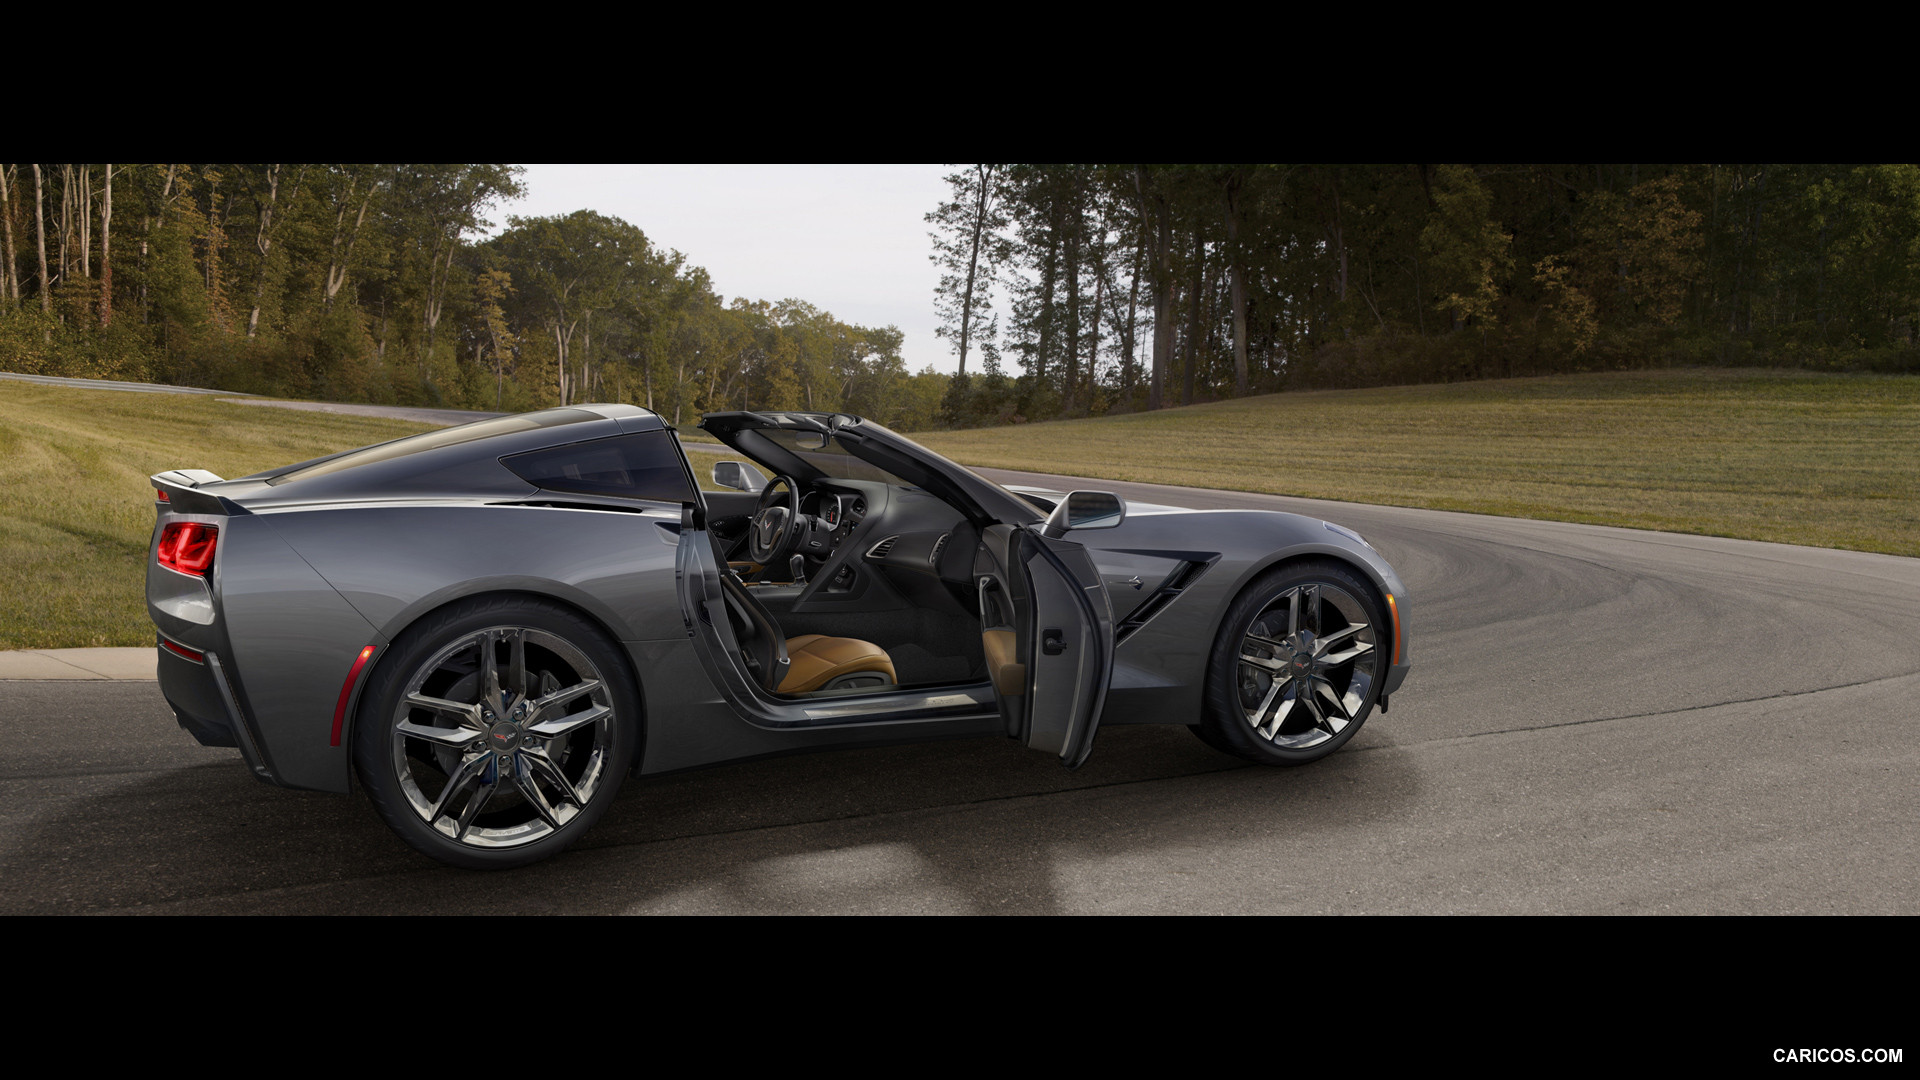 2014 corvette stingray black 2014 Chevrolet Corvette Stingray Convertible Black HD Wallpapers For